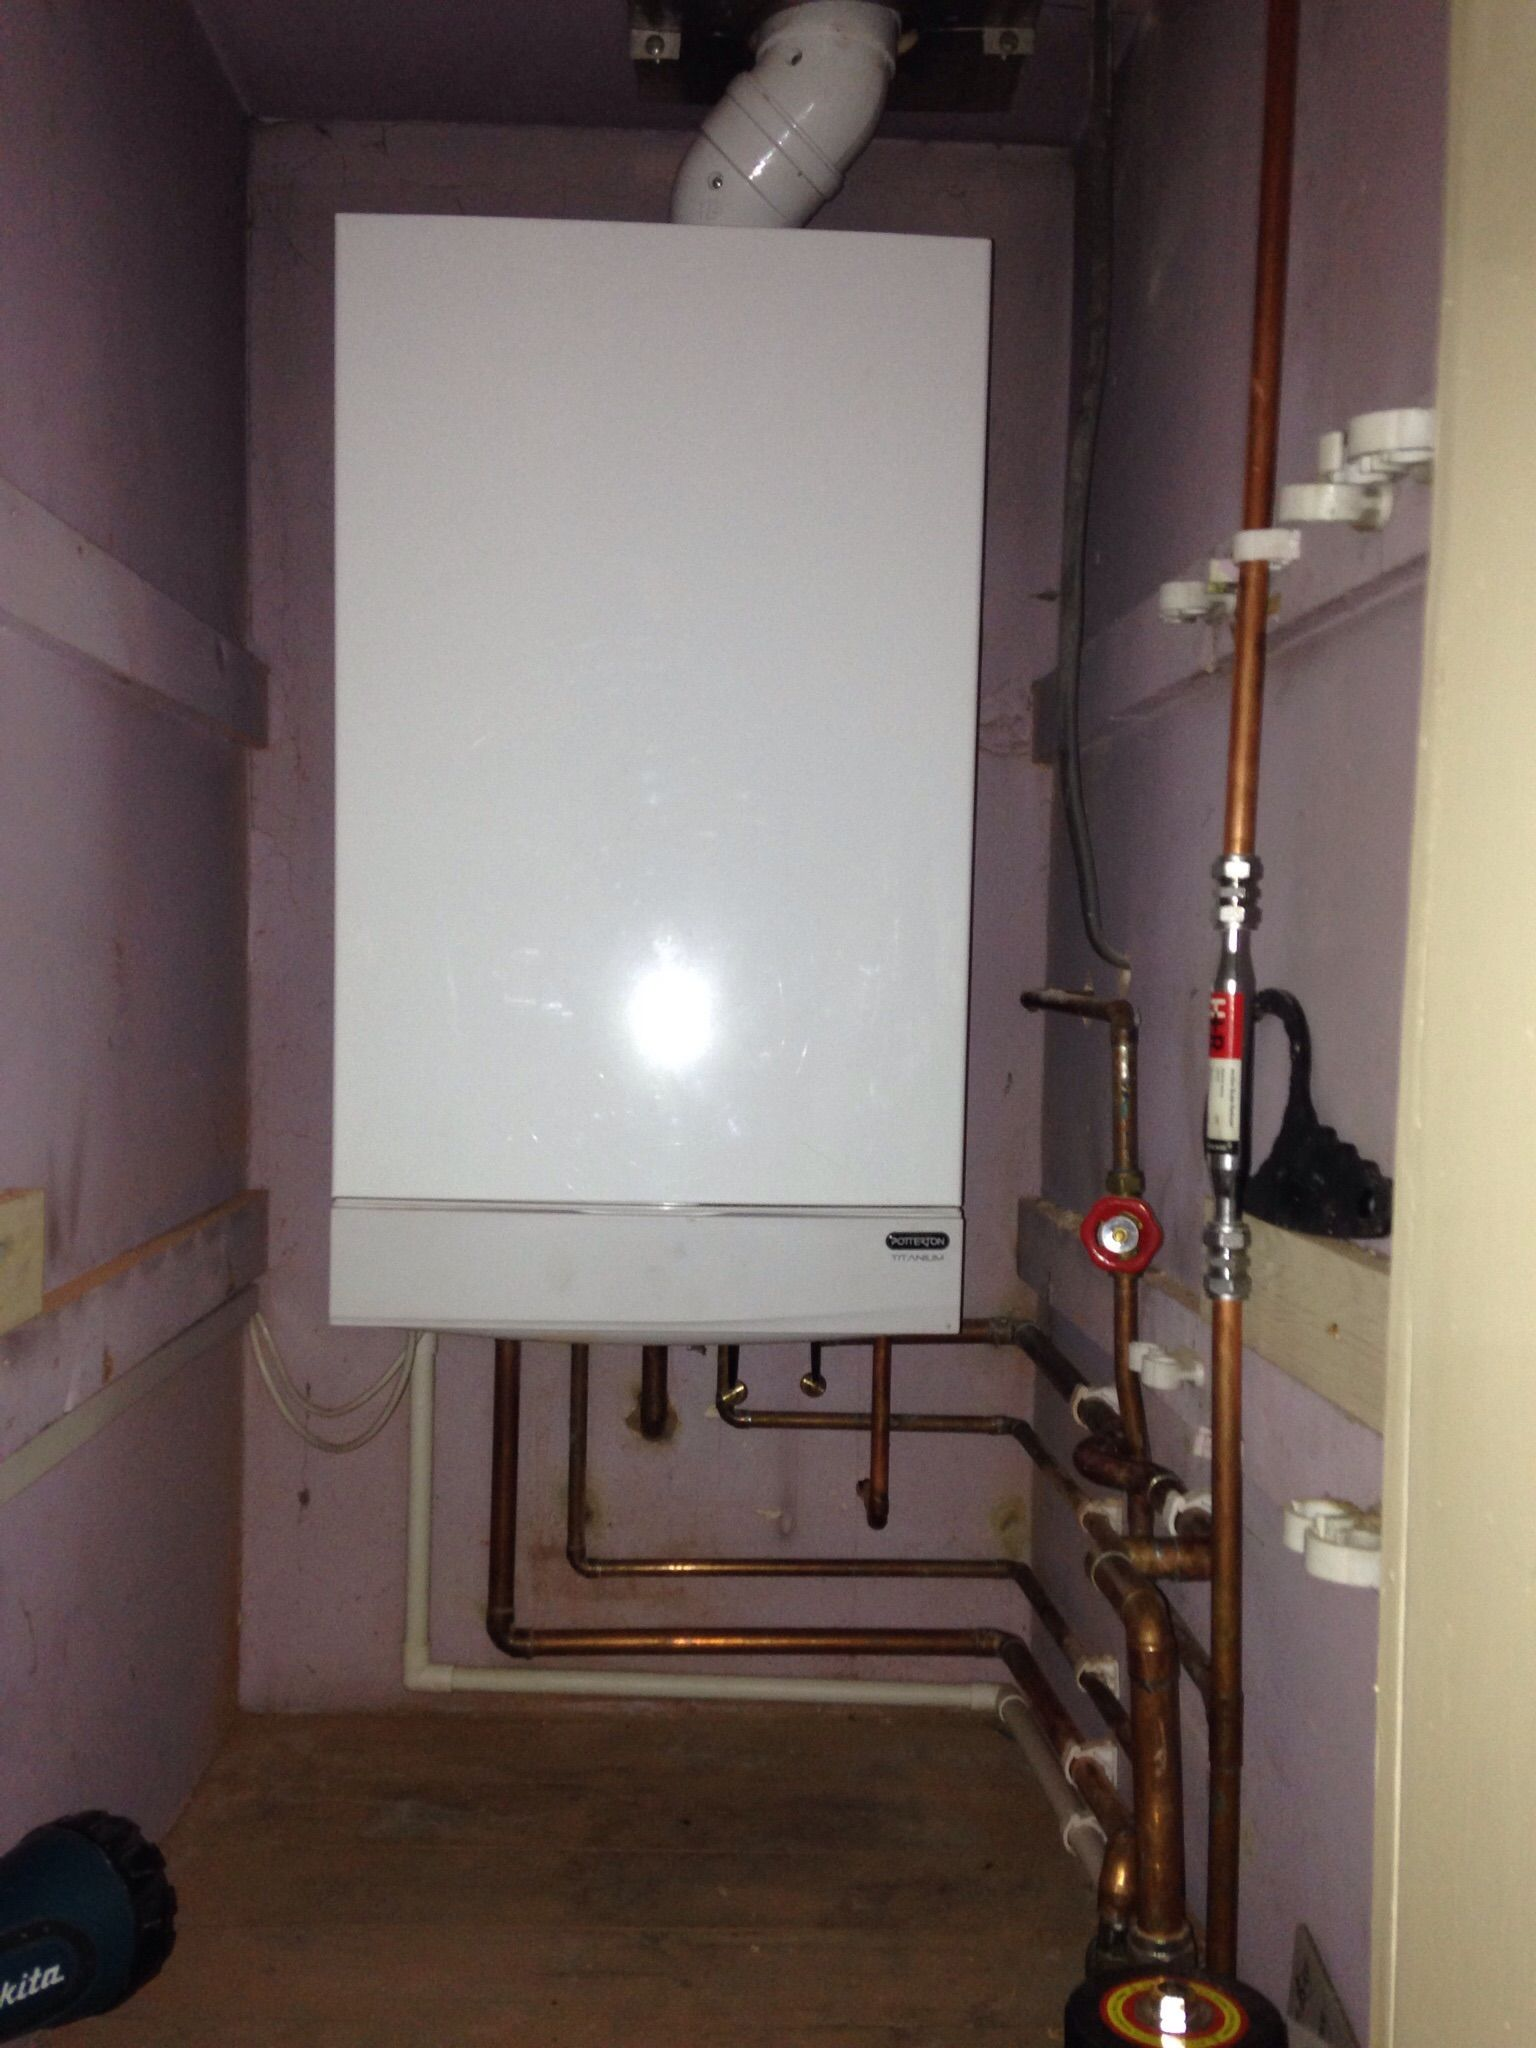 Full System Upgrade From Conventional With Back Boiler To Potterton Titanium Combination Boiler Decor Home Decor Home